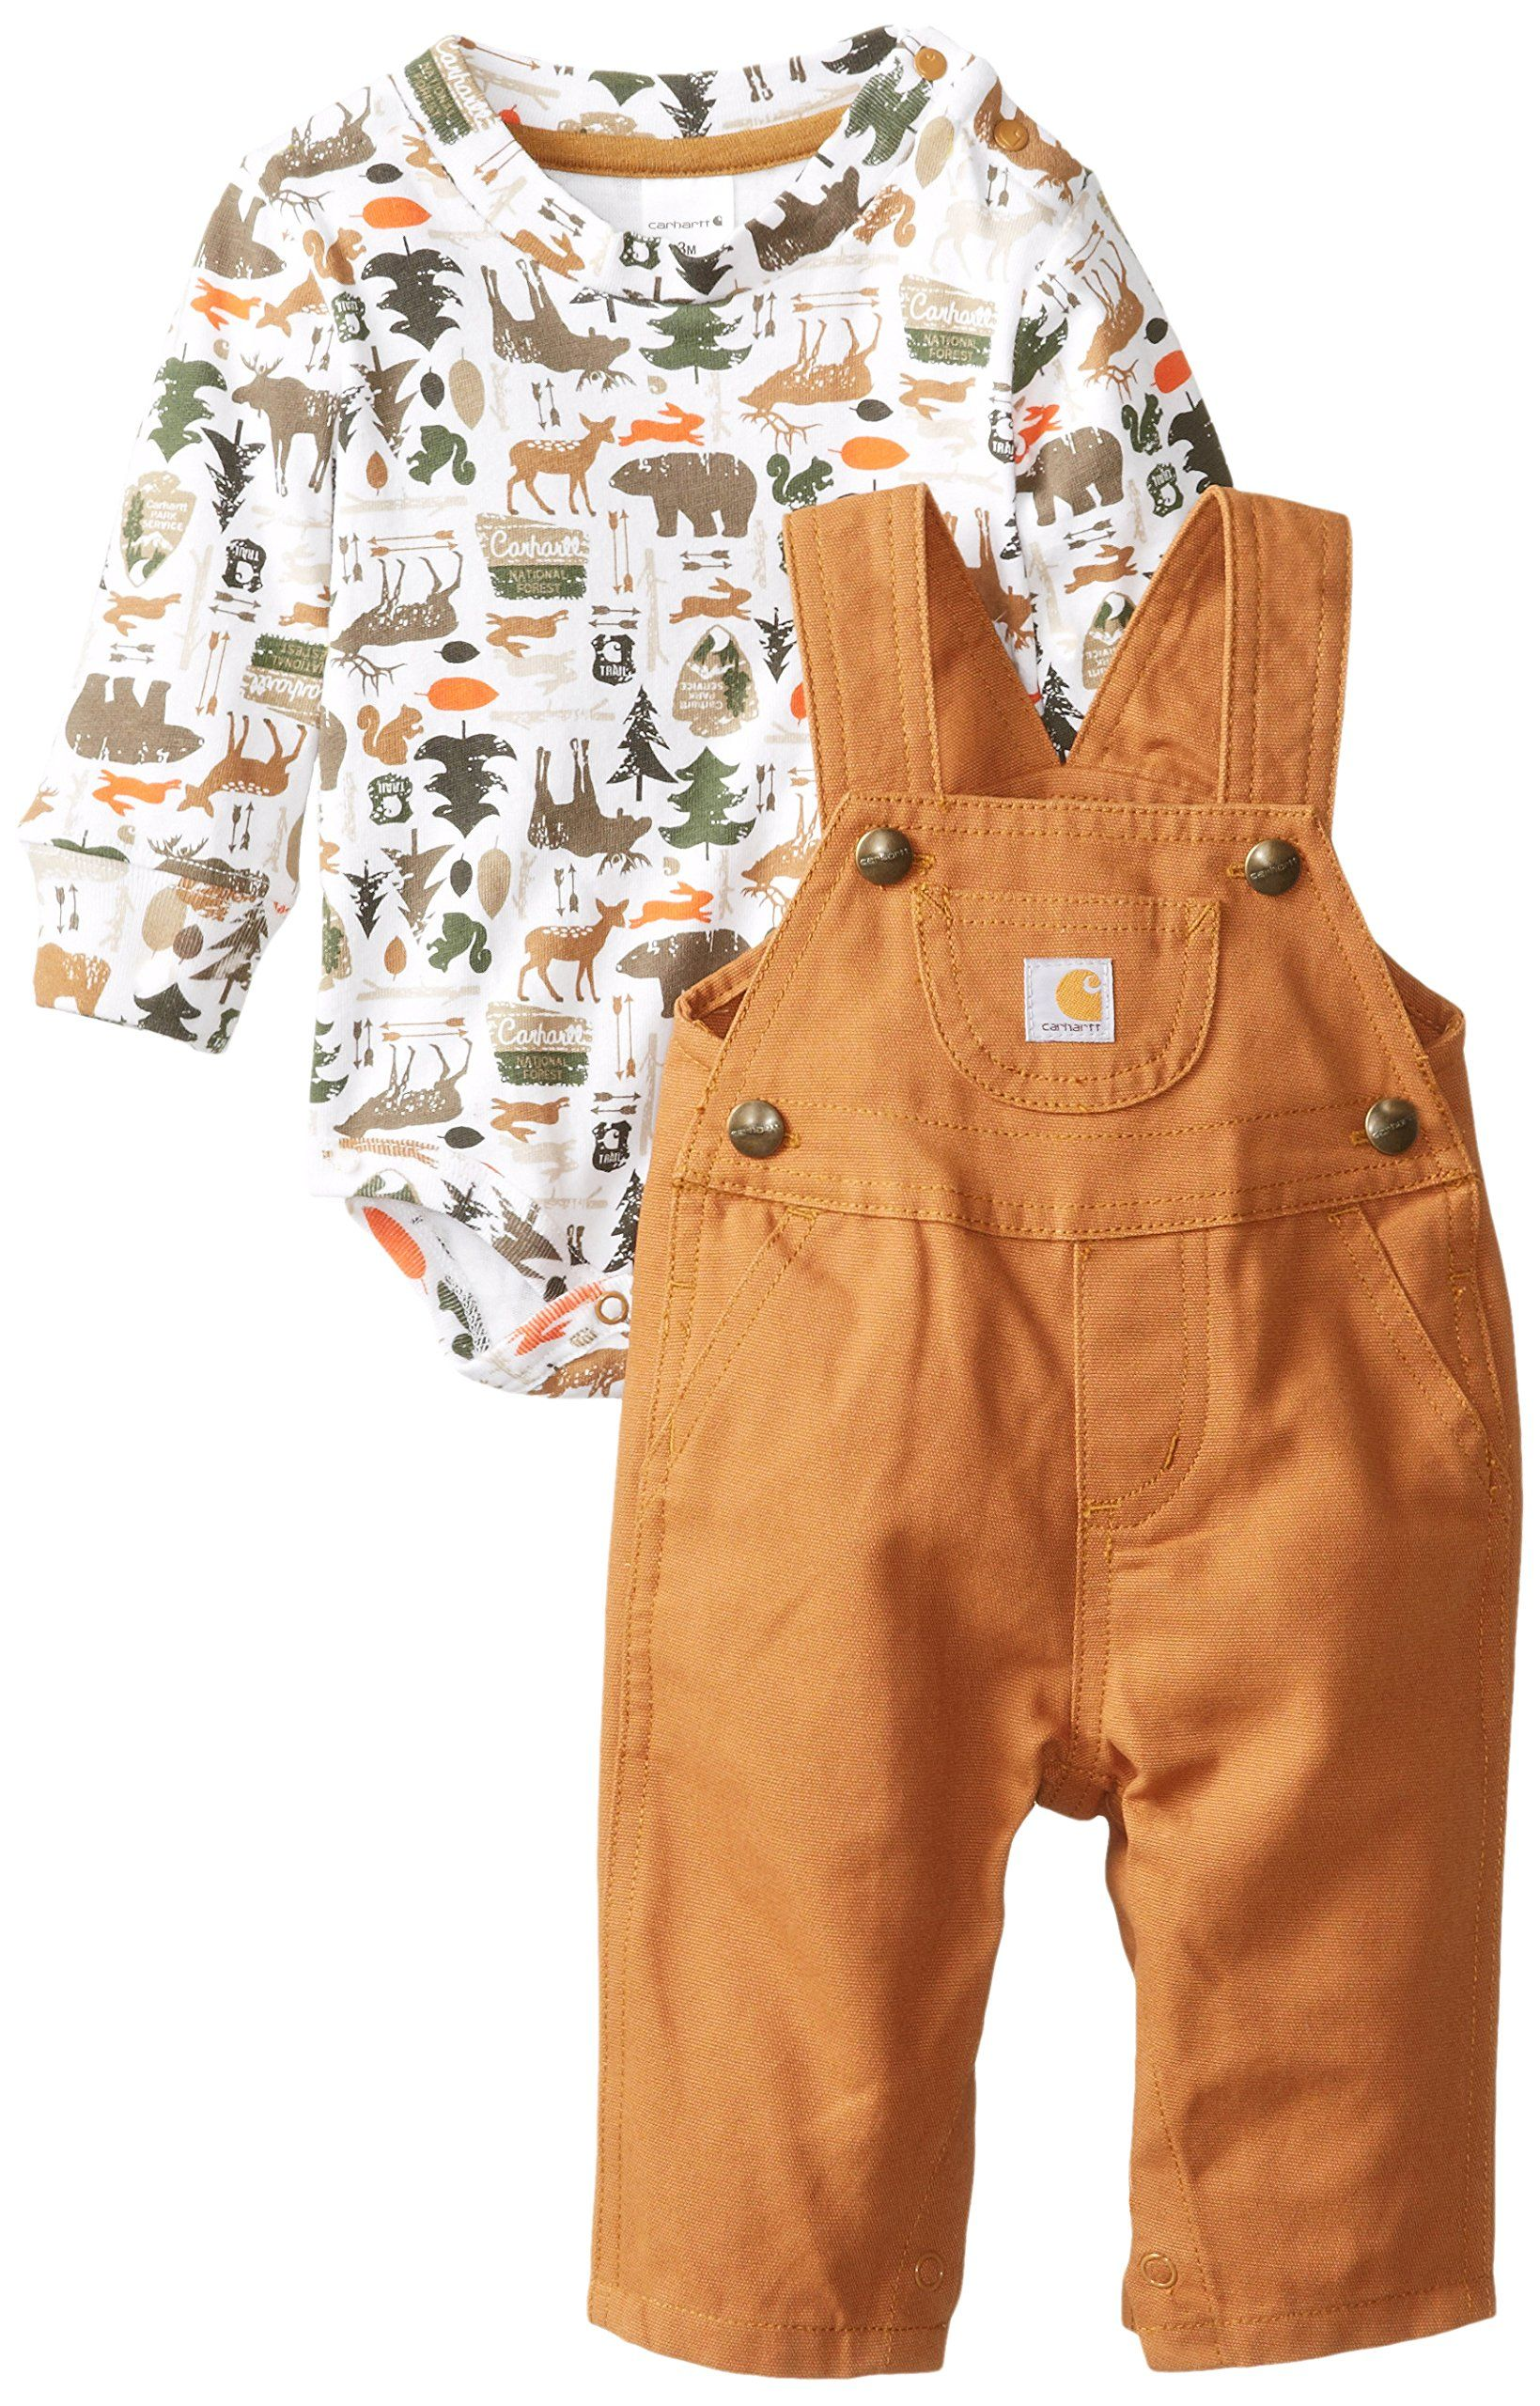 39917fe4d Carhartt Baby-Boys Canvas Bib Overall Set, Carhartt Brown, 24 Months ...